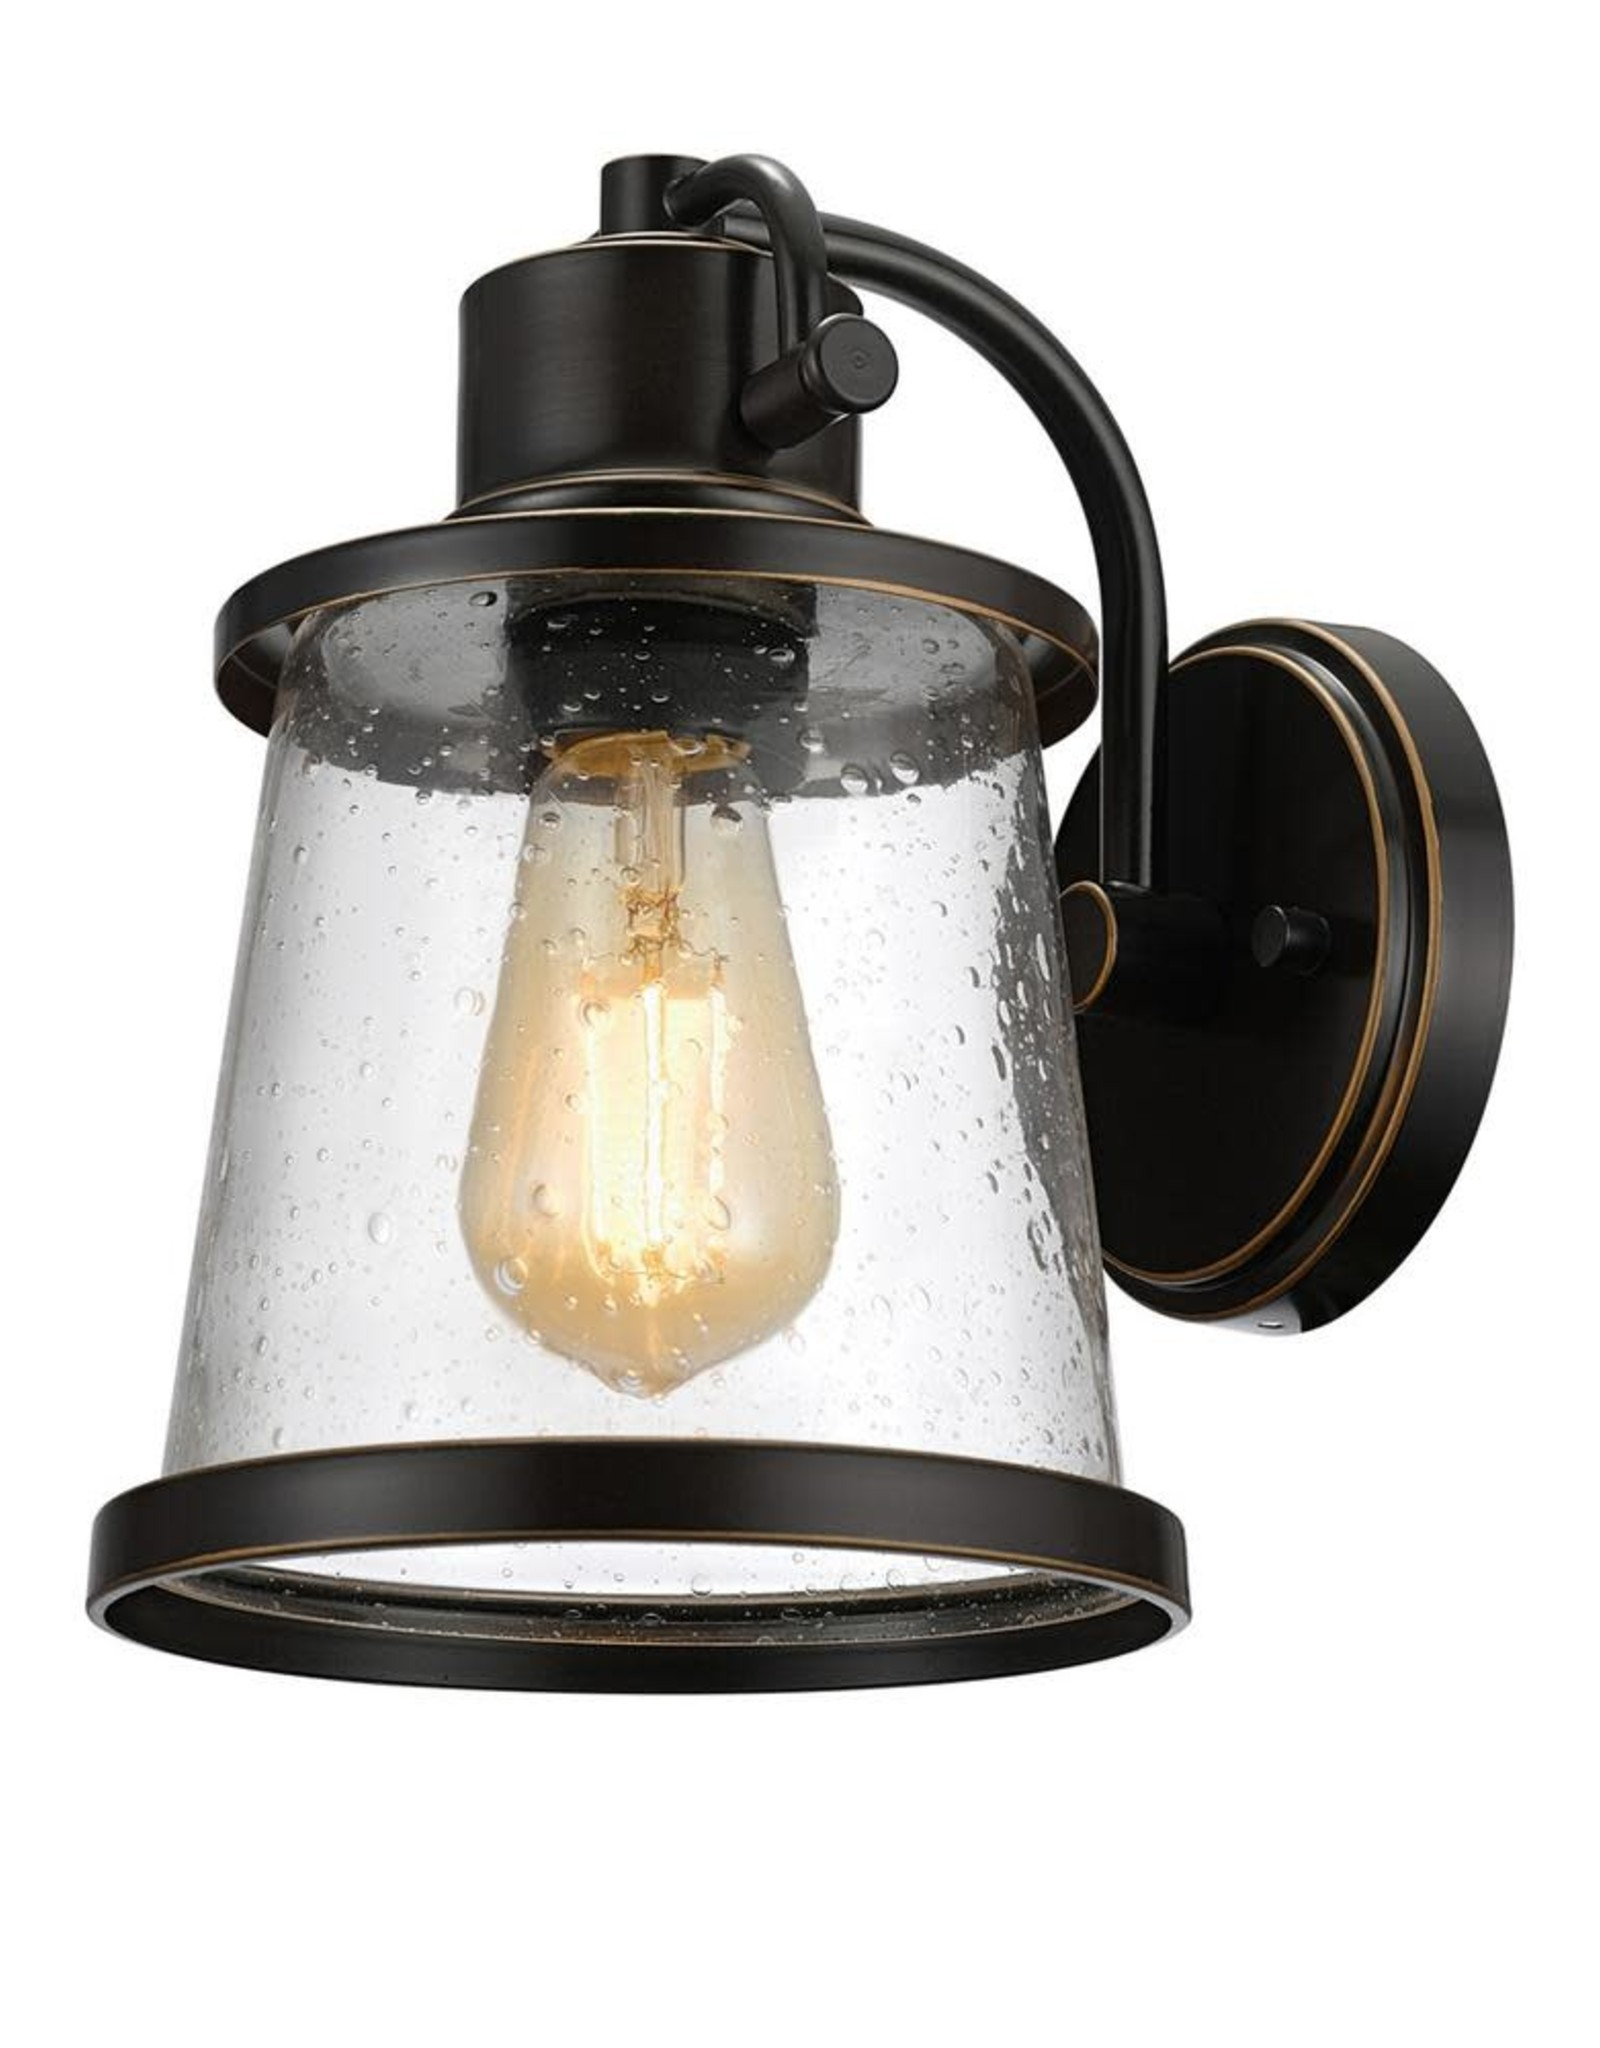 Globe Electric Charlie Collection 1-Light Oil-Rubbed Bronze LED Outdoor Wall Sconce with Clear Seeded Glass Shade, LED Bulb Included